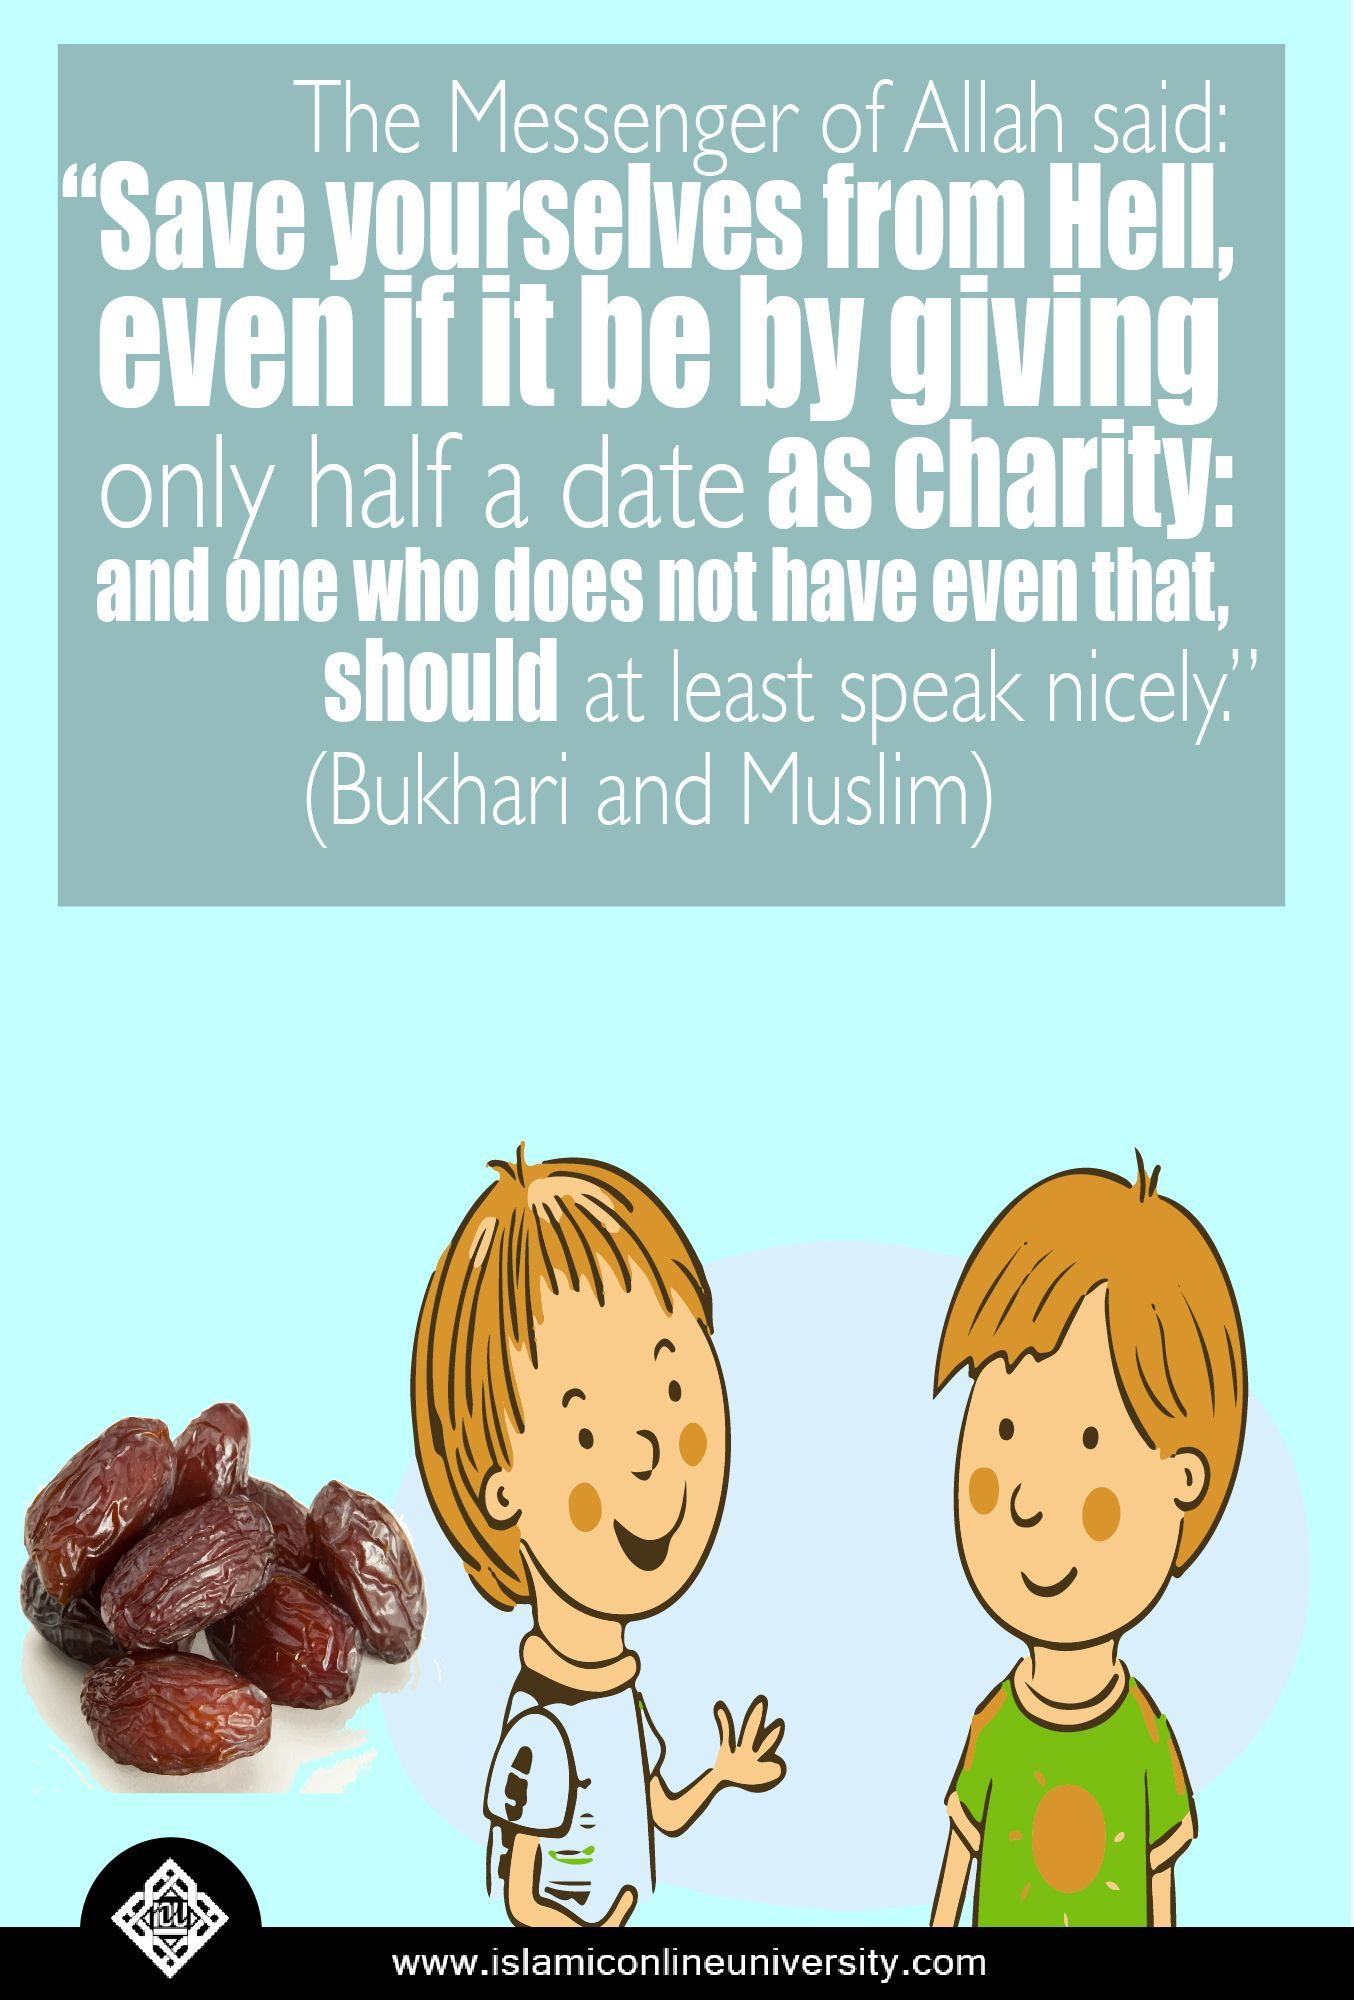 Zakat Calculator Zakat Rules Who Is Eligible For Zakat Sadaqah Definition Of Charity Charity Water Charity Organizations Charity Quotes Learn Islam Quran Islam